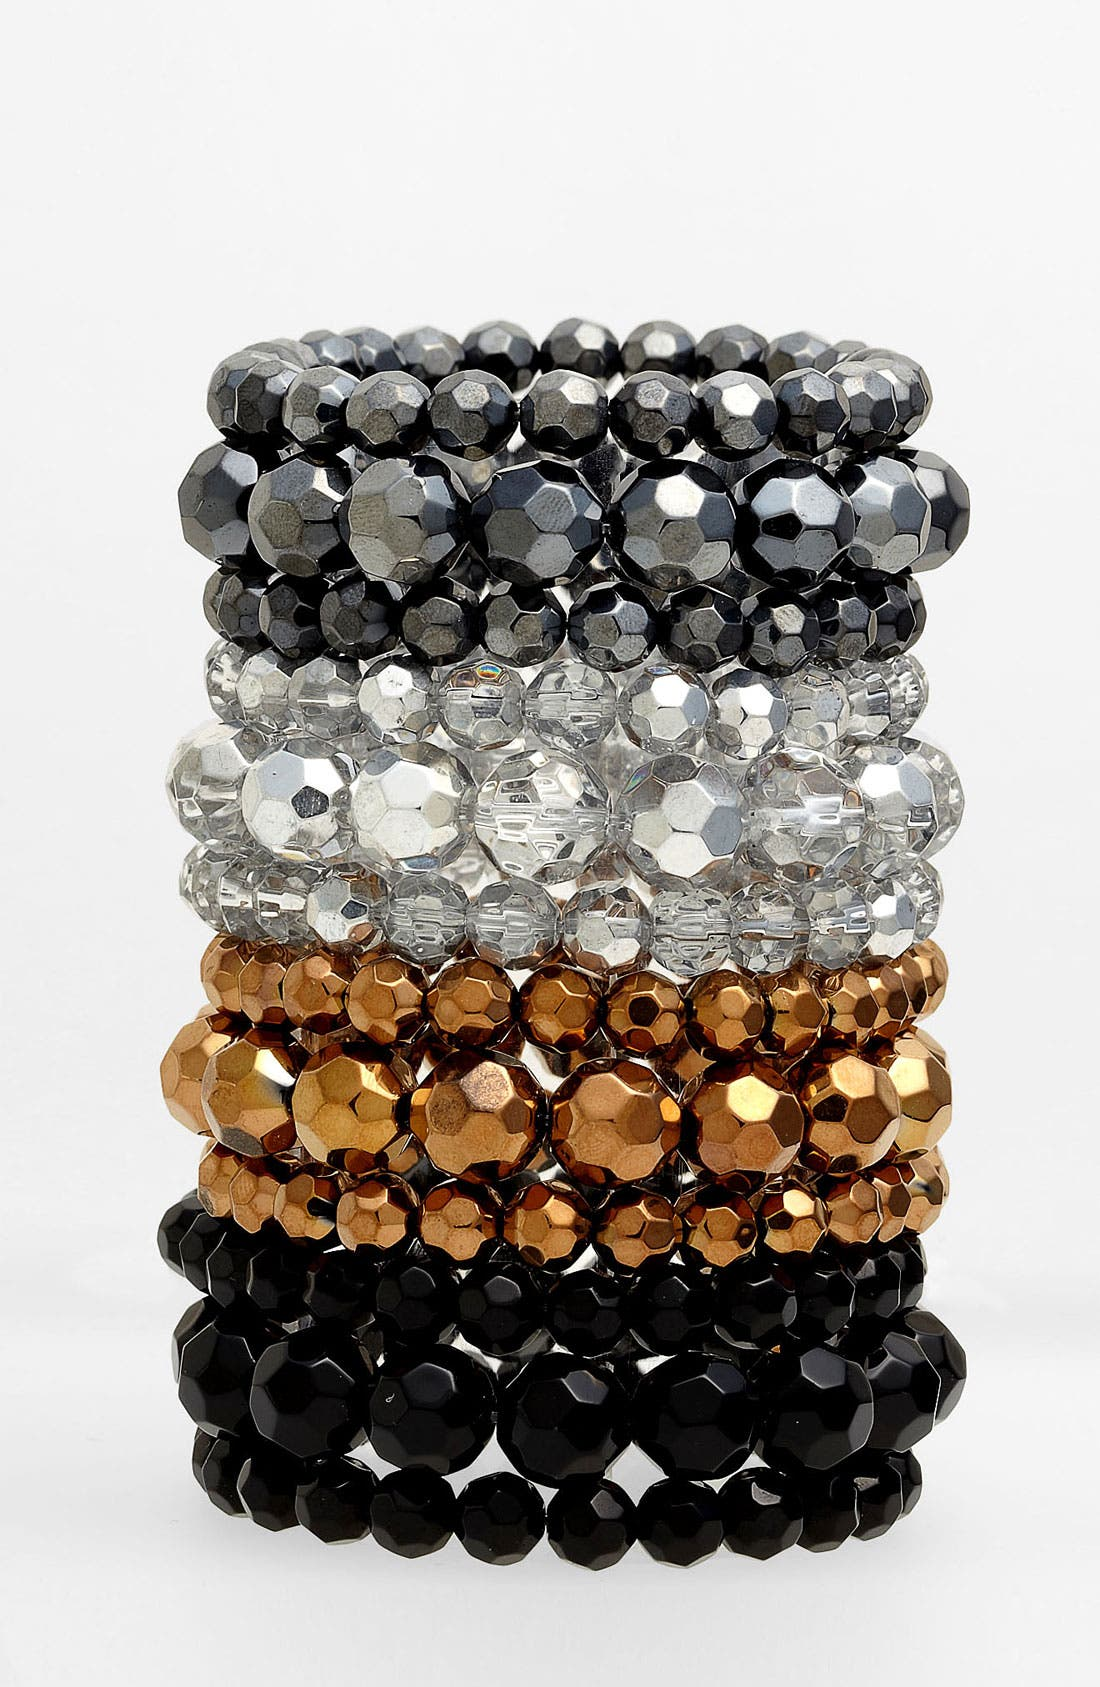 Alternate Image 1 Selected - Nordstrom Bead Stretch Bracelet (Set of 3)